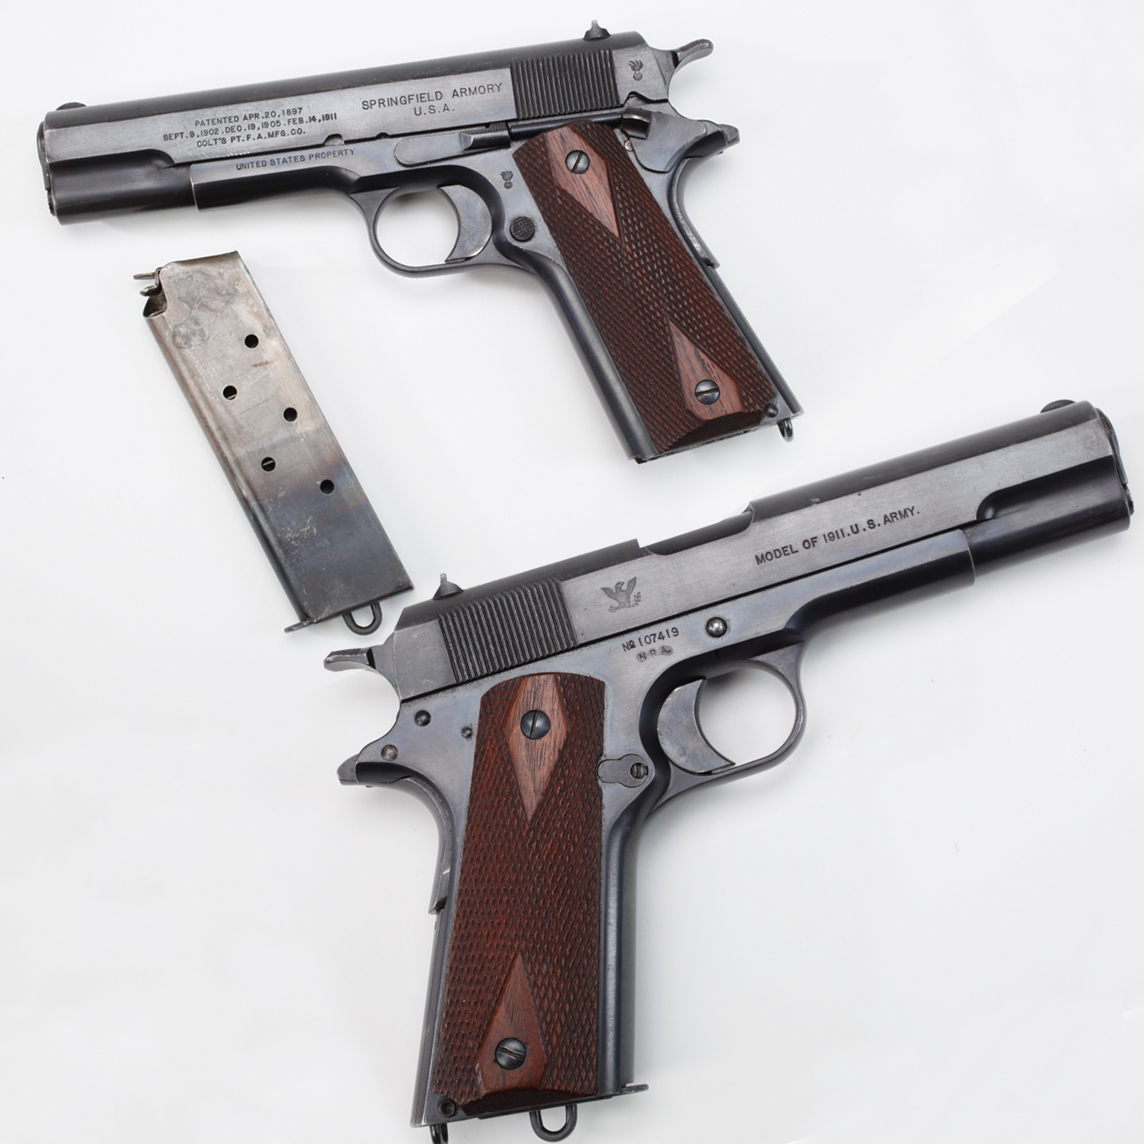 Springfield Armory NRA 1911 - For this Veteran\'s Day – we wanted to ...